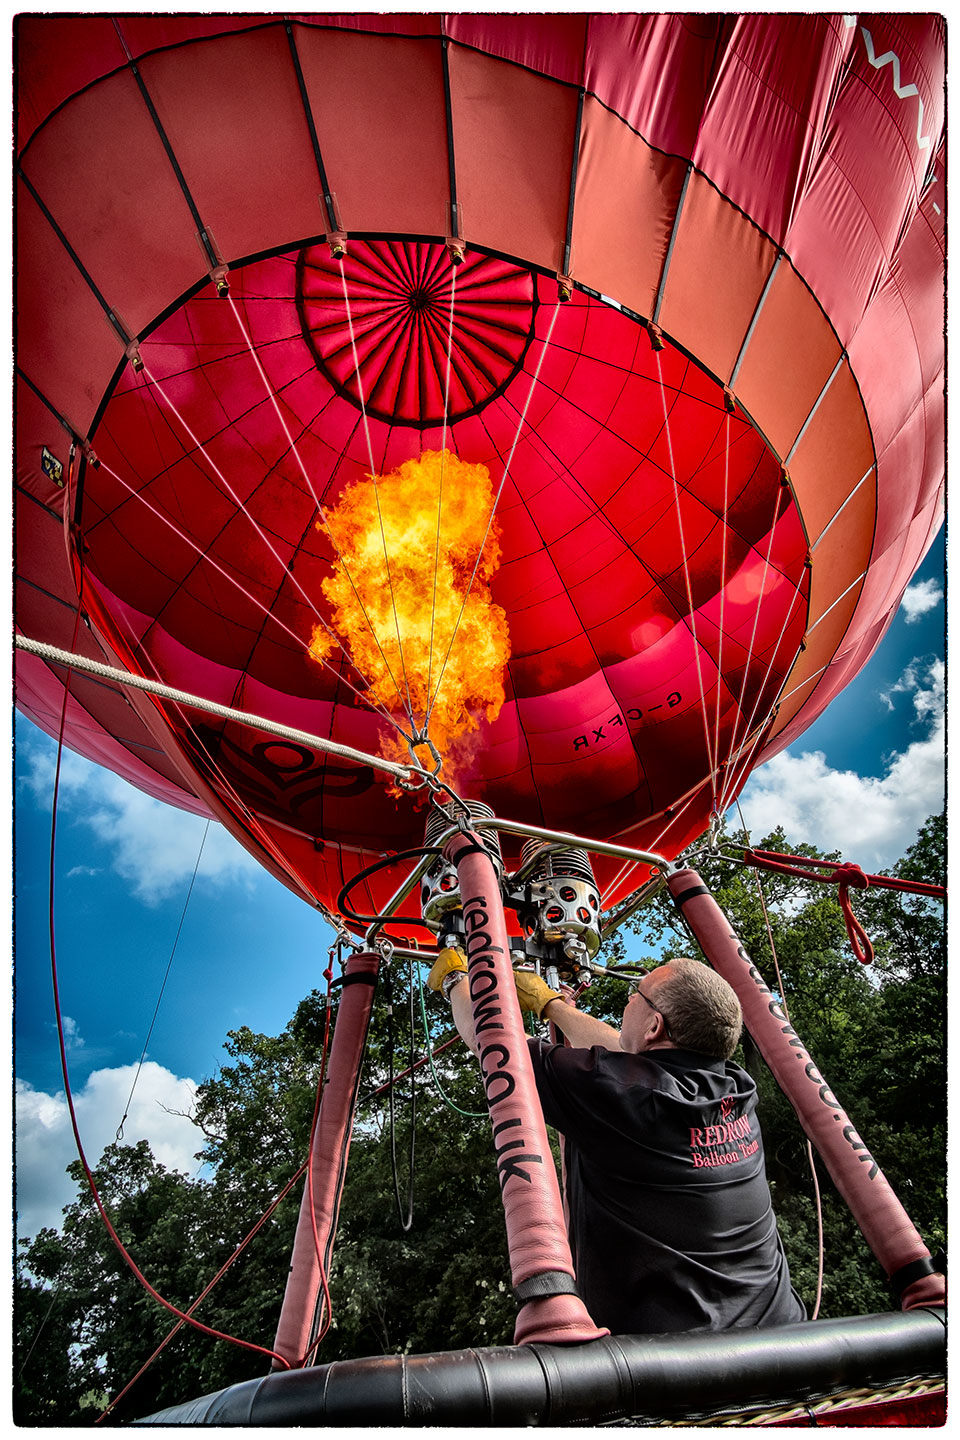 Readying the hot air balloon at Bolesworth today.